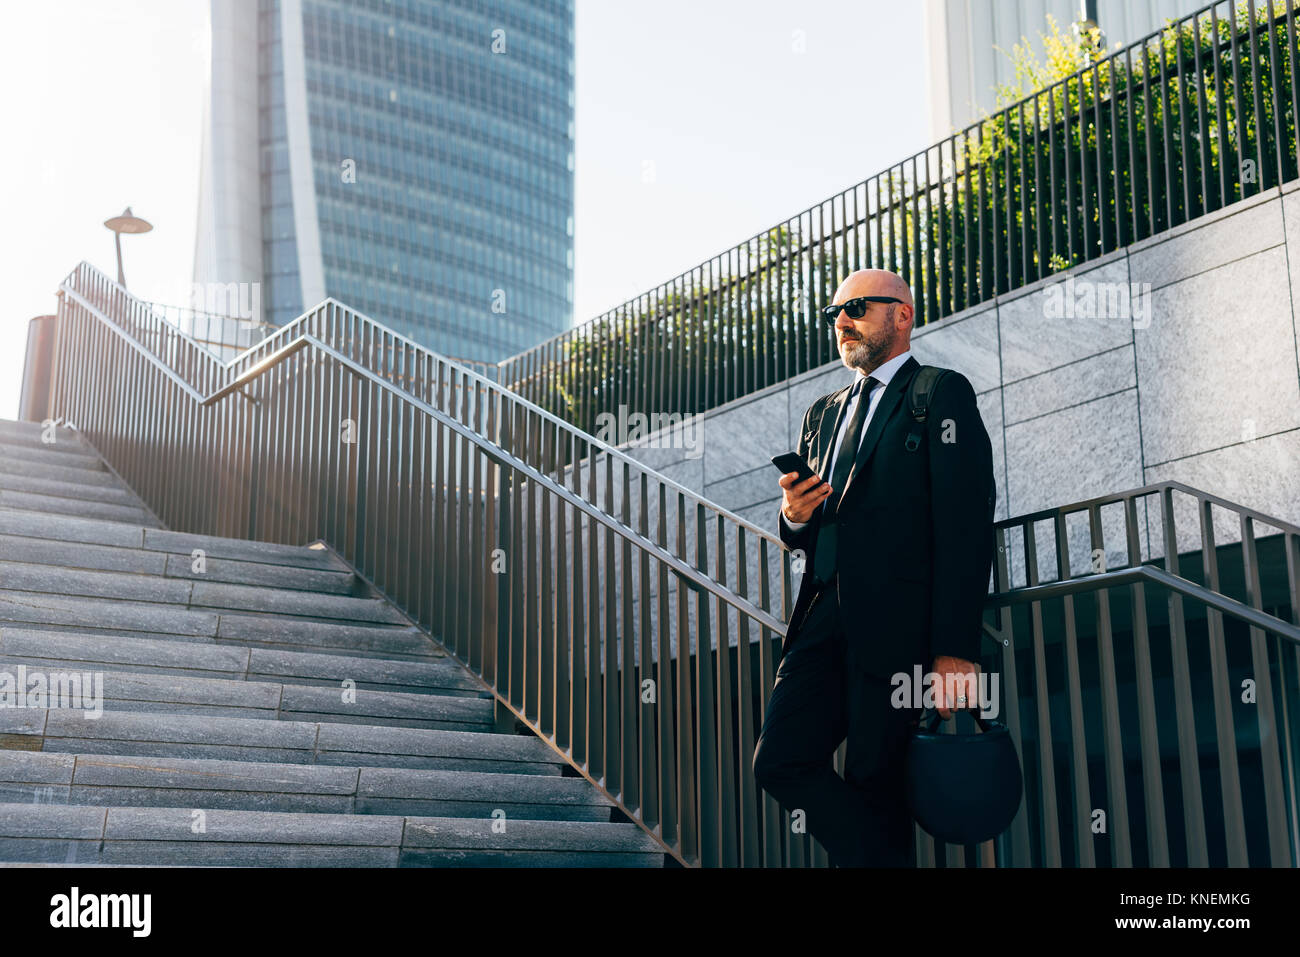 Mature businessman standing on steps, using smartphone, low angle view Stock Photo